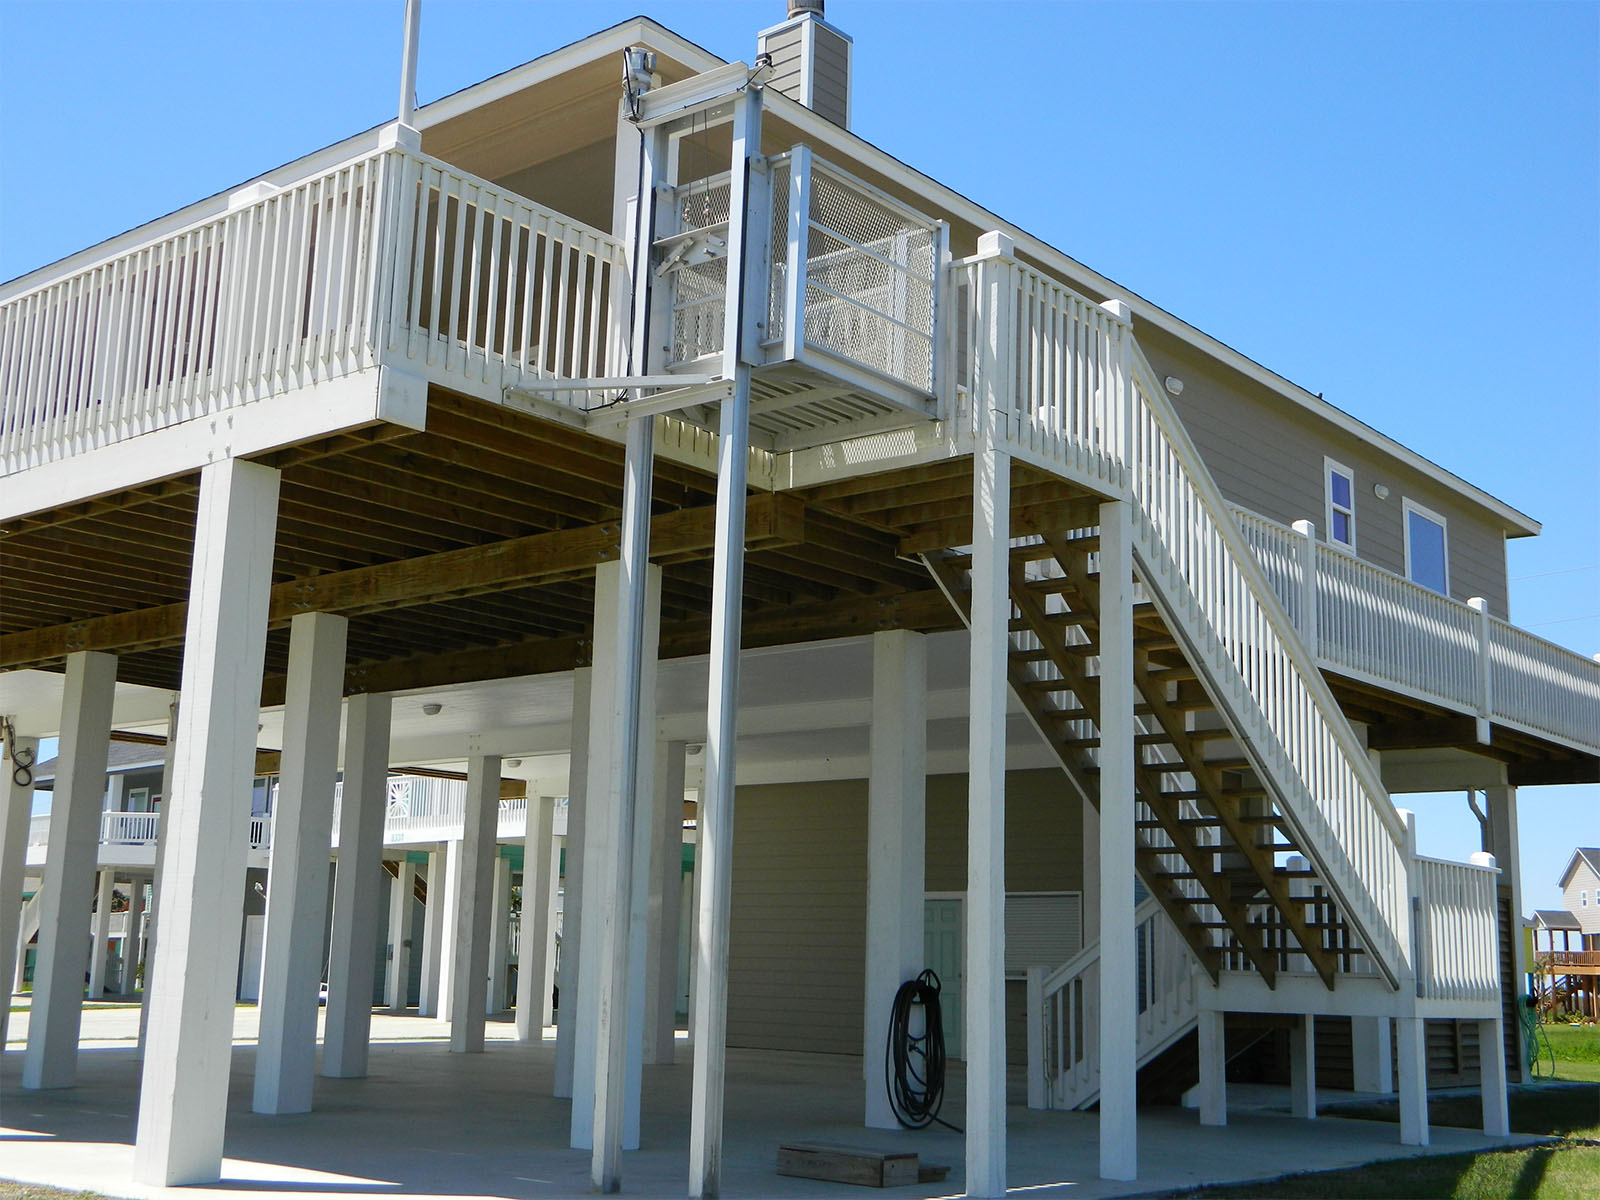 Gallery Easylift Beach House Cargo Lifts